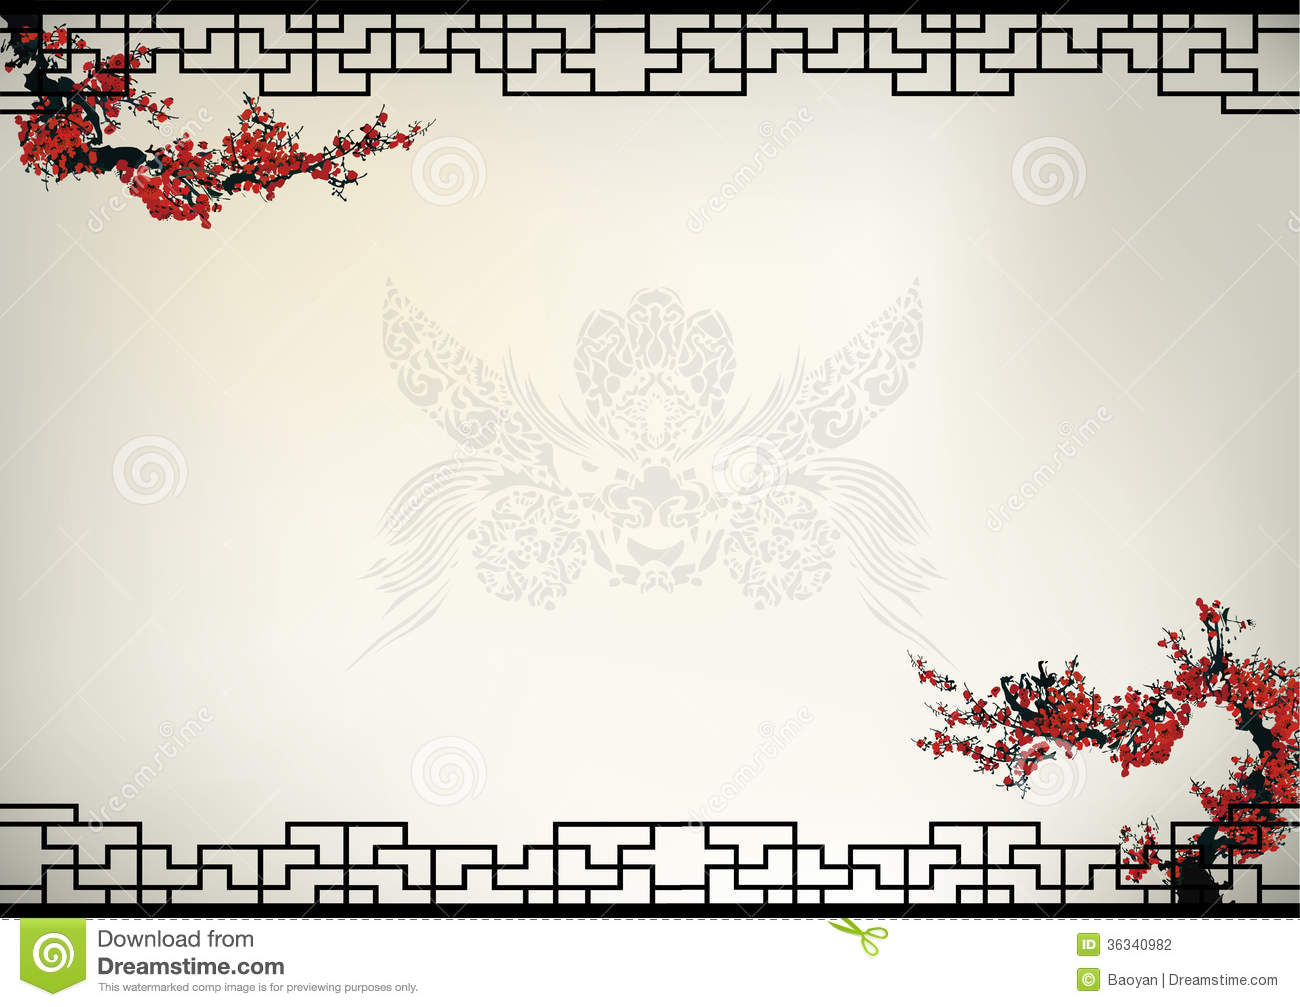 Chinese Background Stock Photography - Image: 36340982